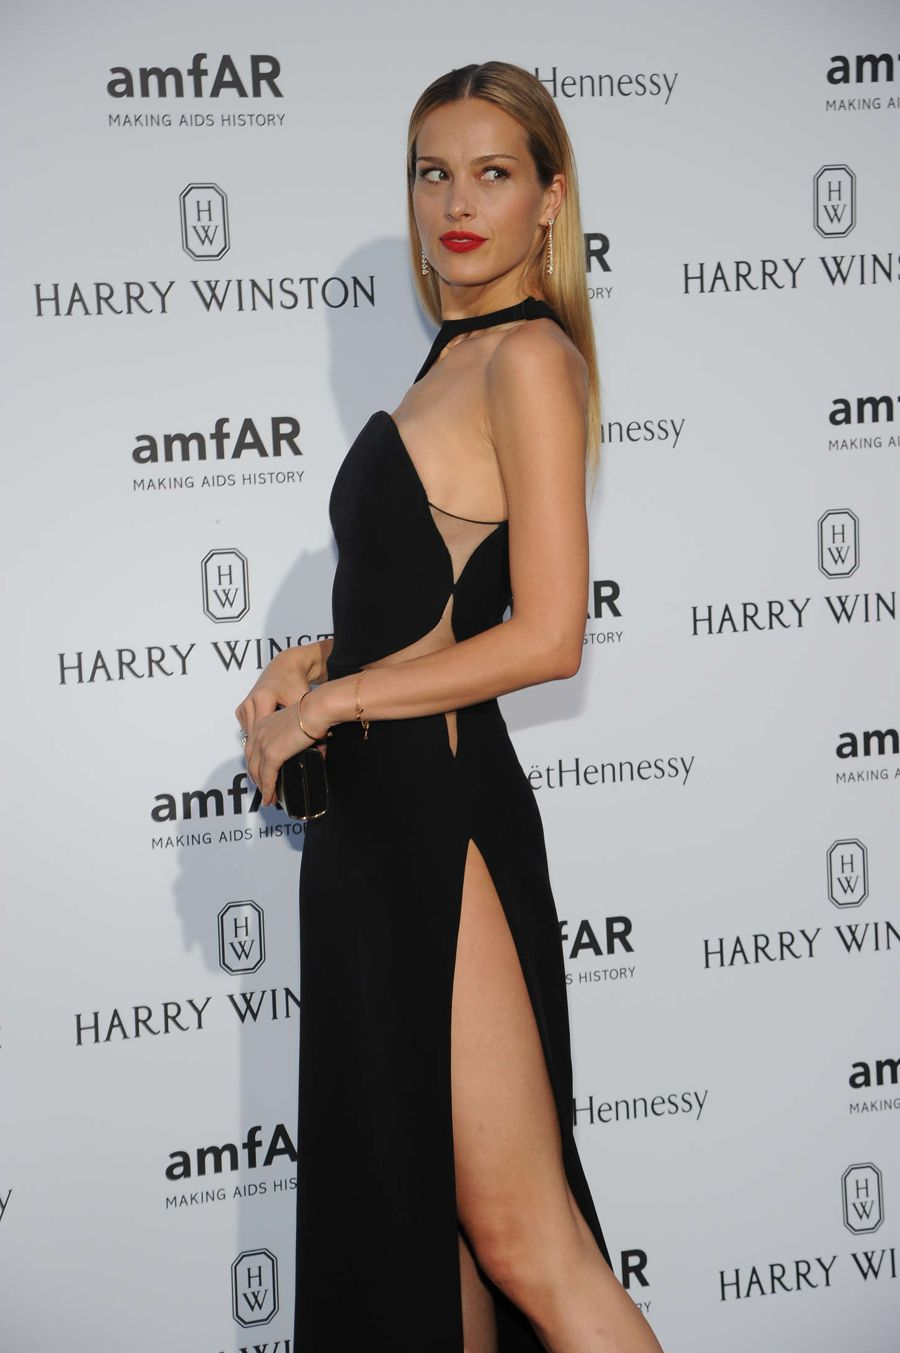 Petra Nemcova - amfAR Dinner in Paris